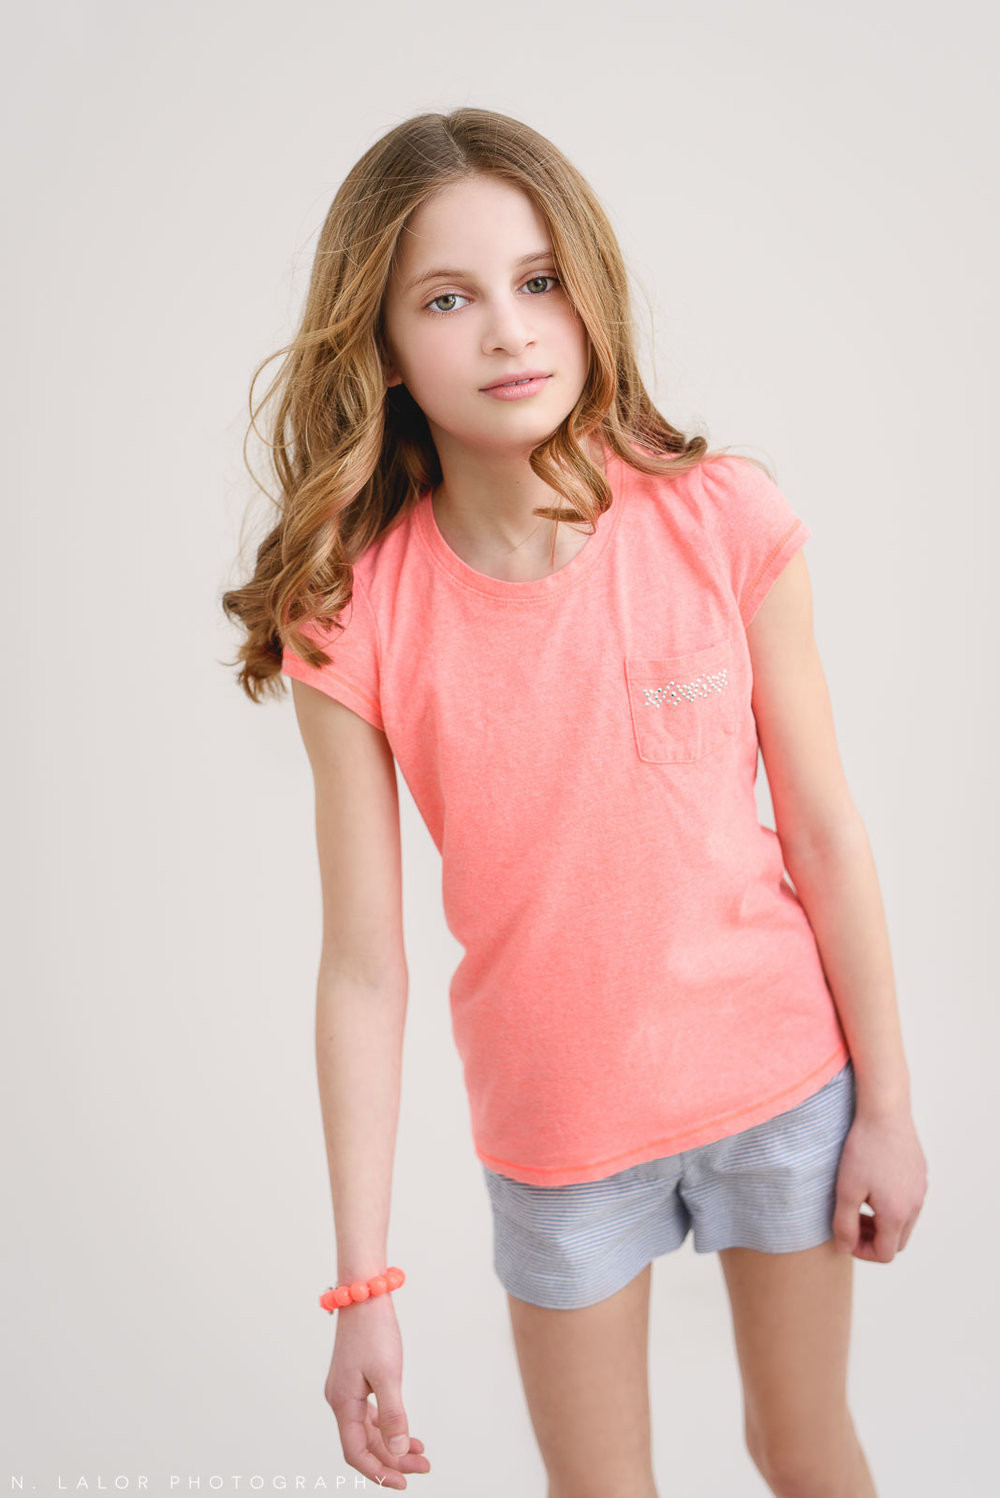 Pink shirt and bracelet. Tween Studio photoshoot by N. Lalor Photography, located in Greenwich, CT.